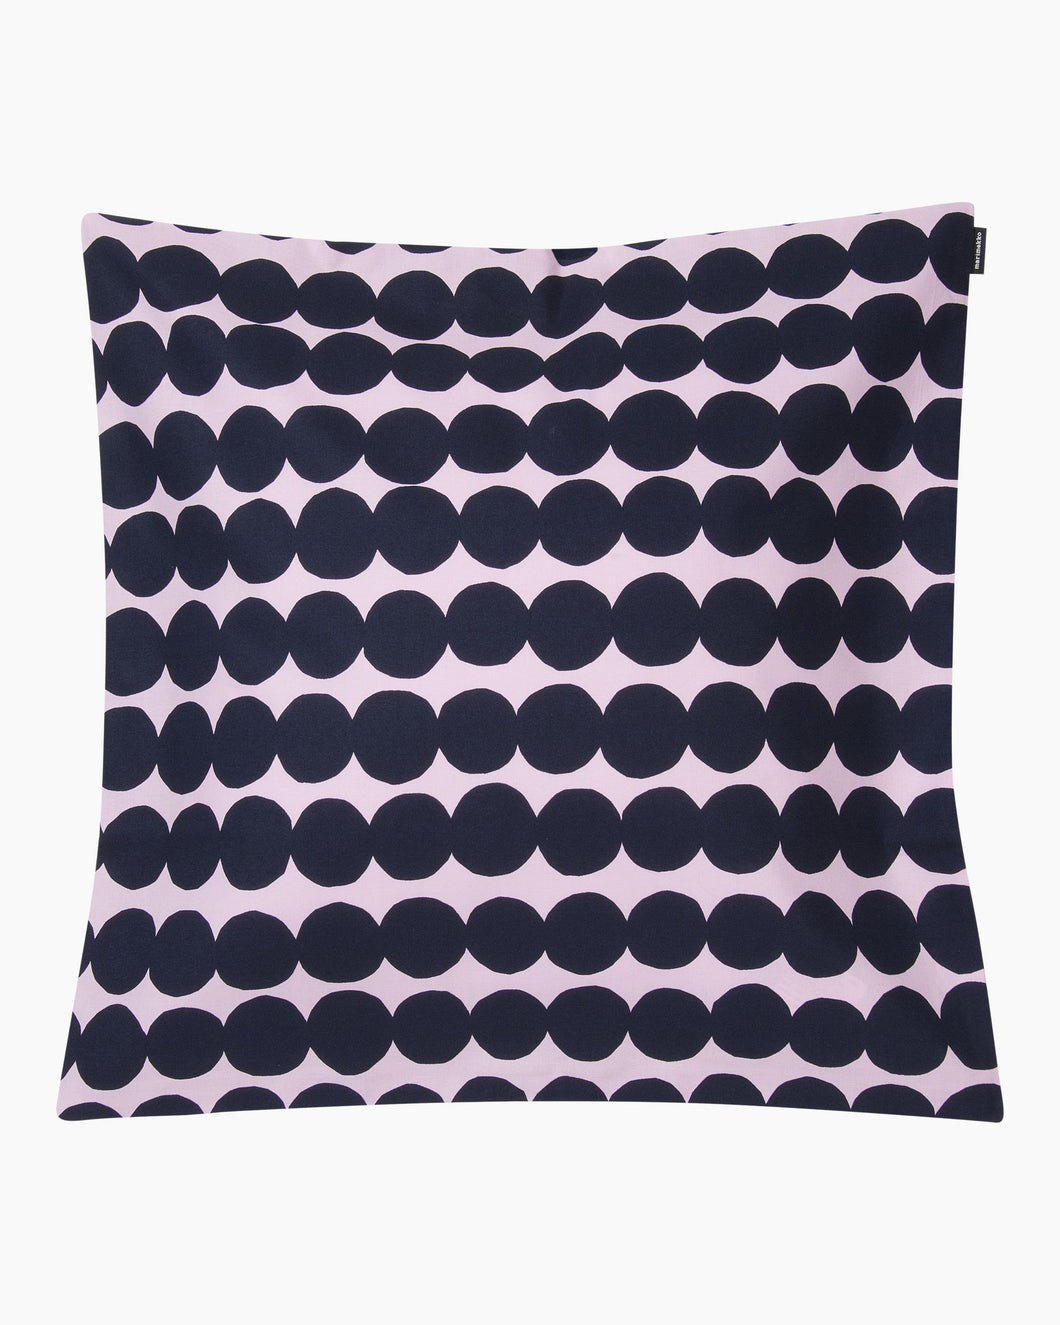 Marimekko Cushion Cover Rasymatto Blue Spot Pink - stilecollettivo